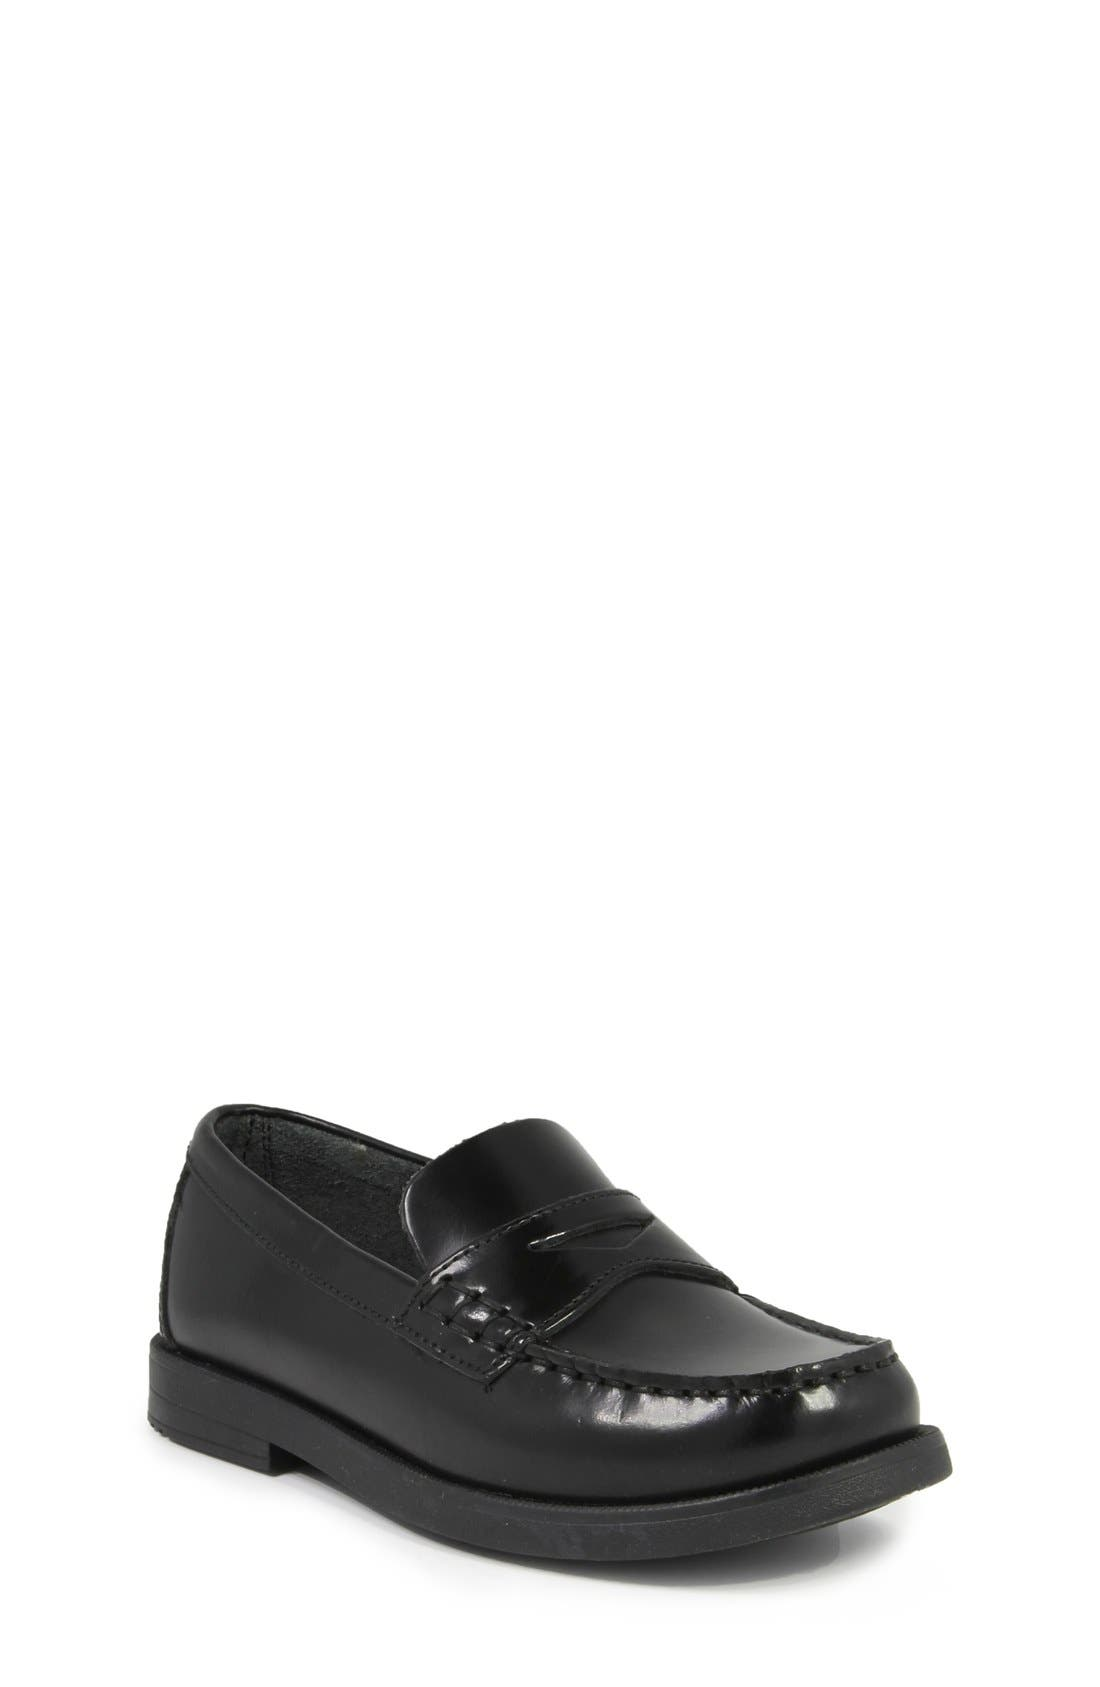 'Croquet' Penny Loafer,                         Main,                         color, BLACK